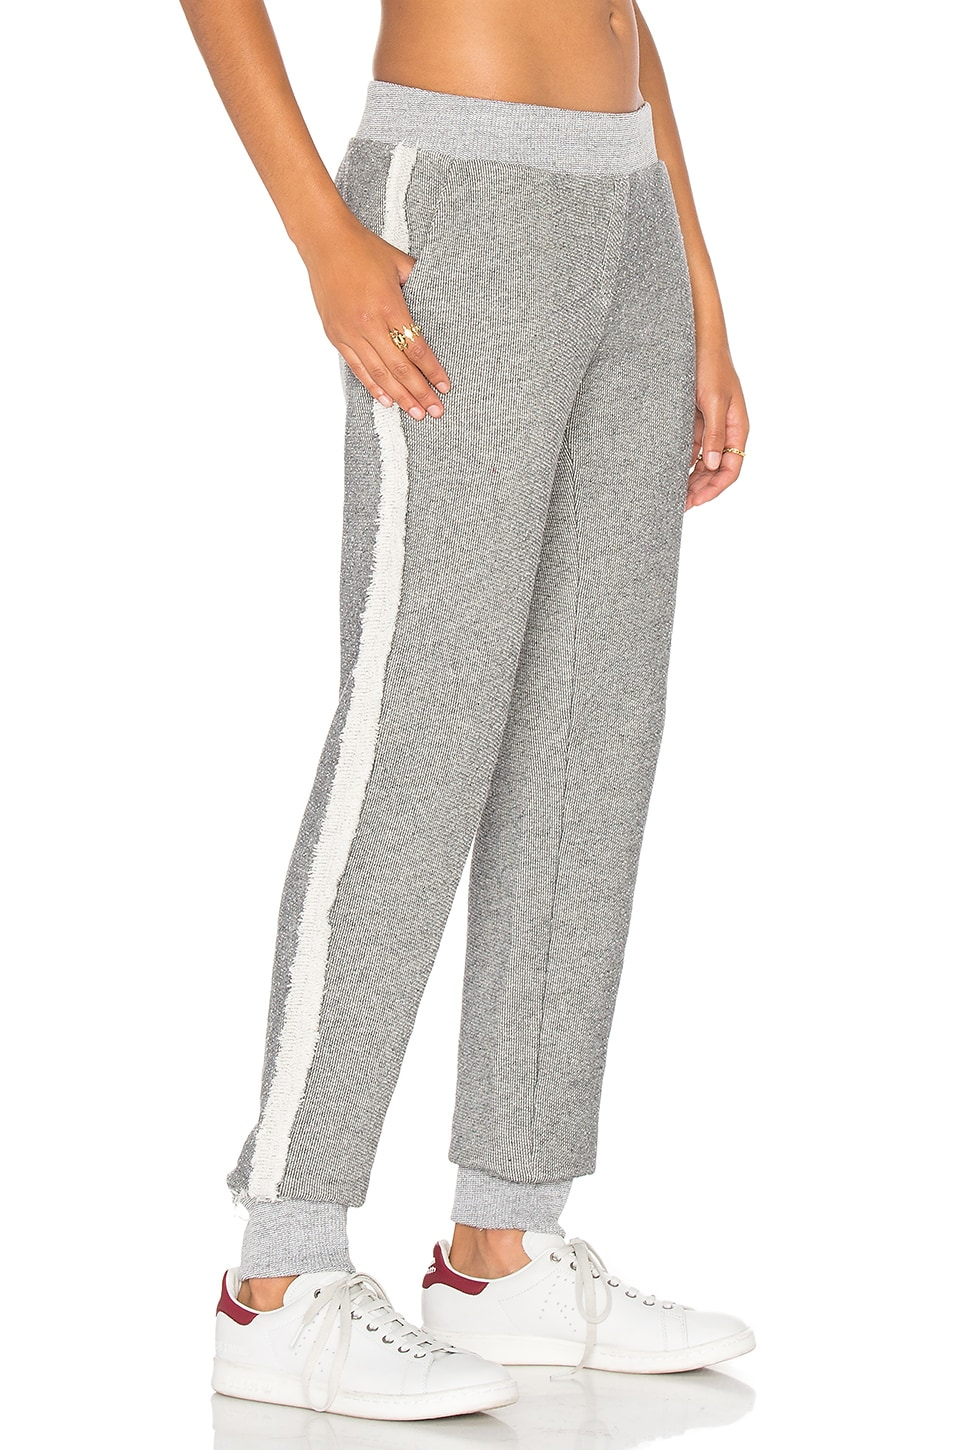 Suzie Pant by Nation LTD womens clothes online